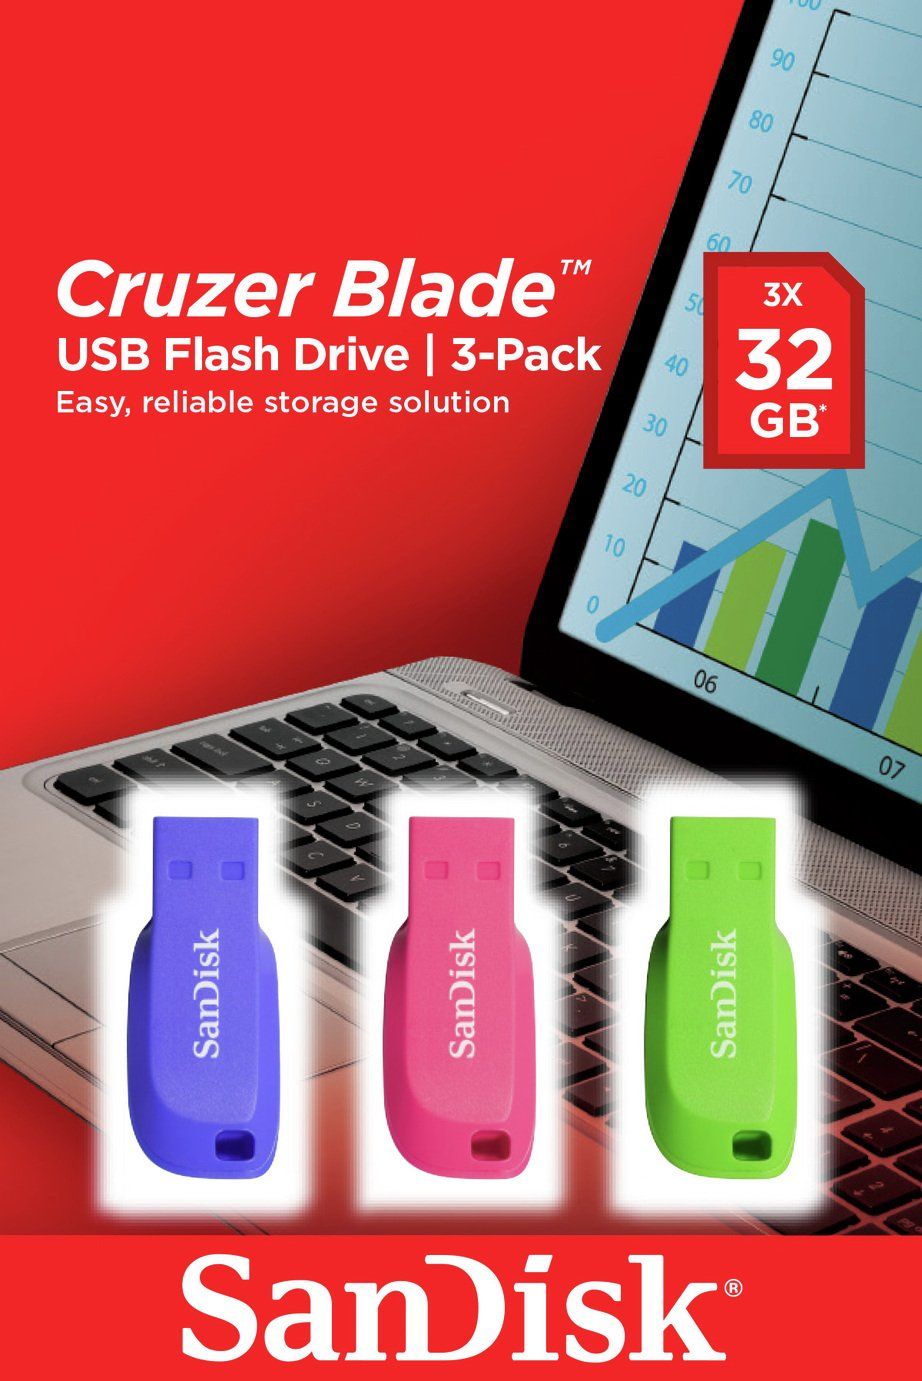 SanDisk Cruzer Blade USB 2.0 Flash Drive Pack of 3 - 32GB